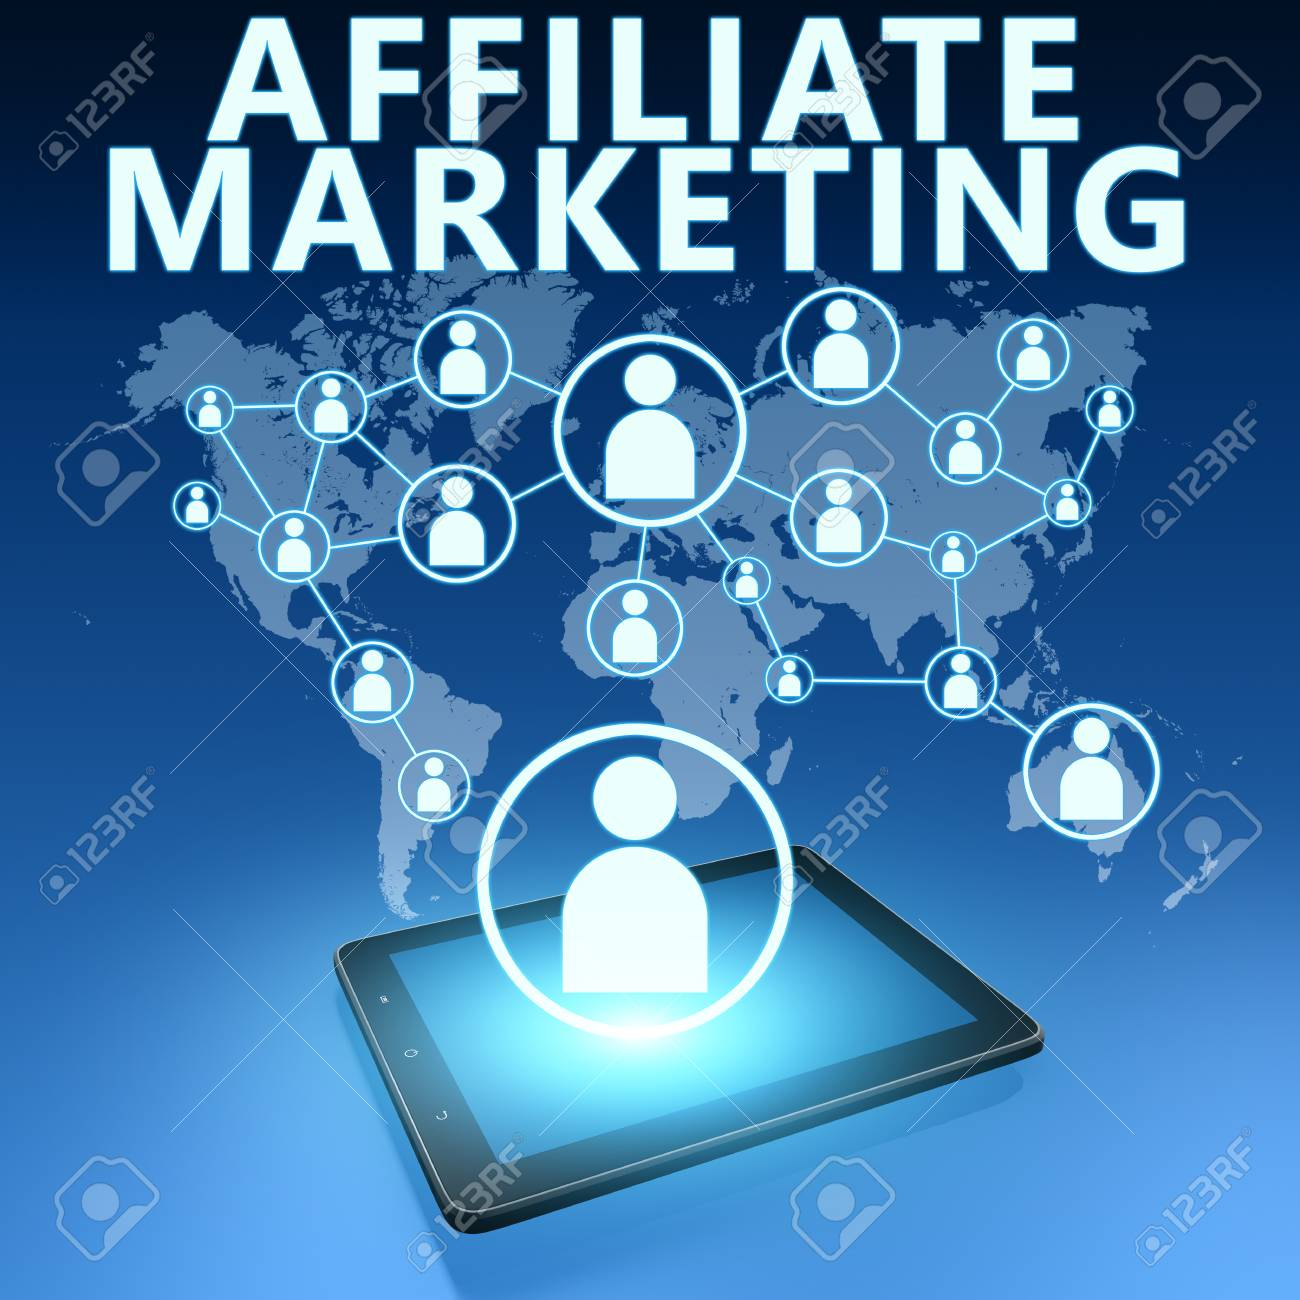 Affiliate Marketing illustration with tablet computer on blue background - 37948677